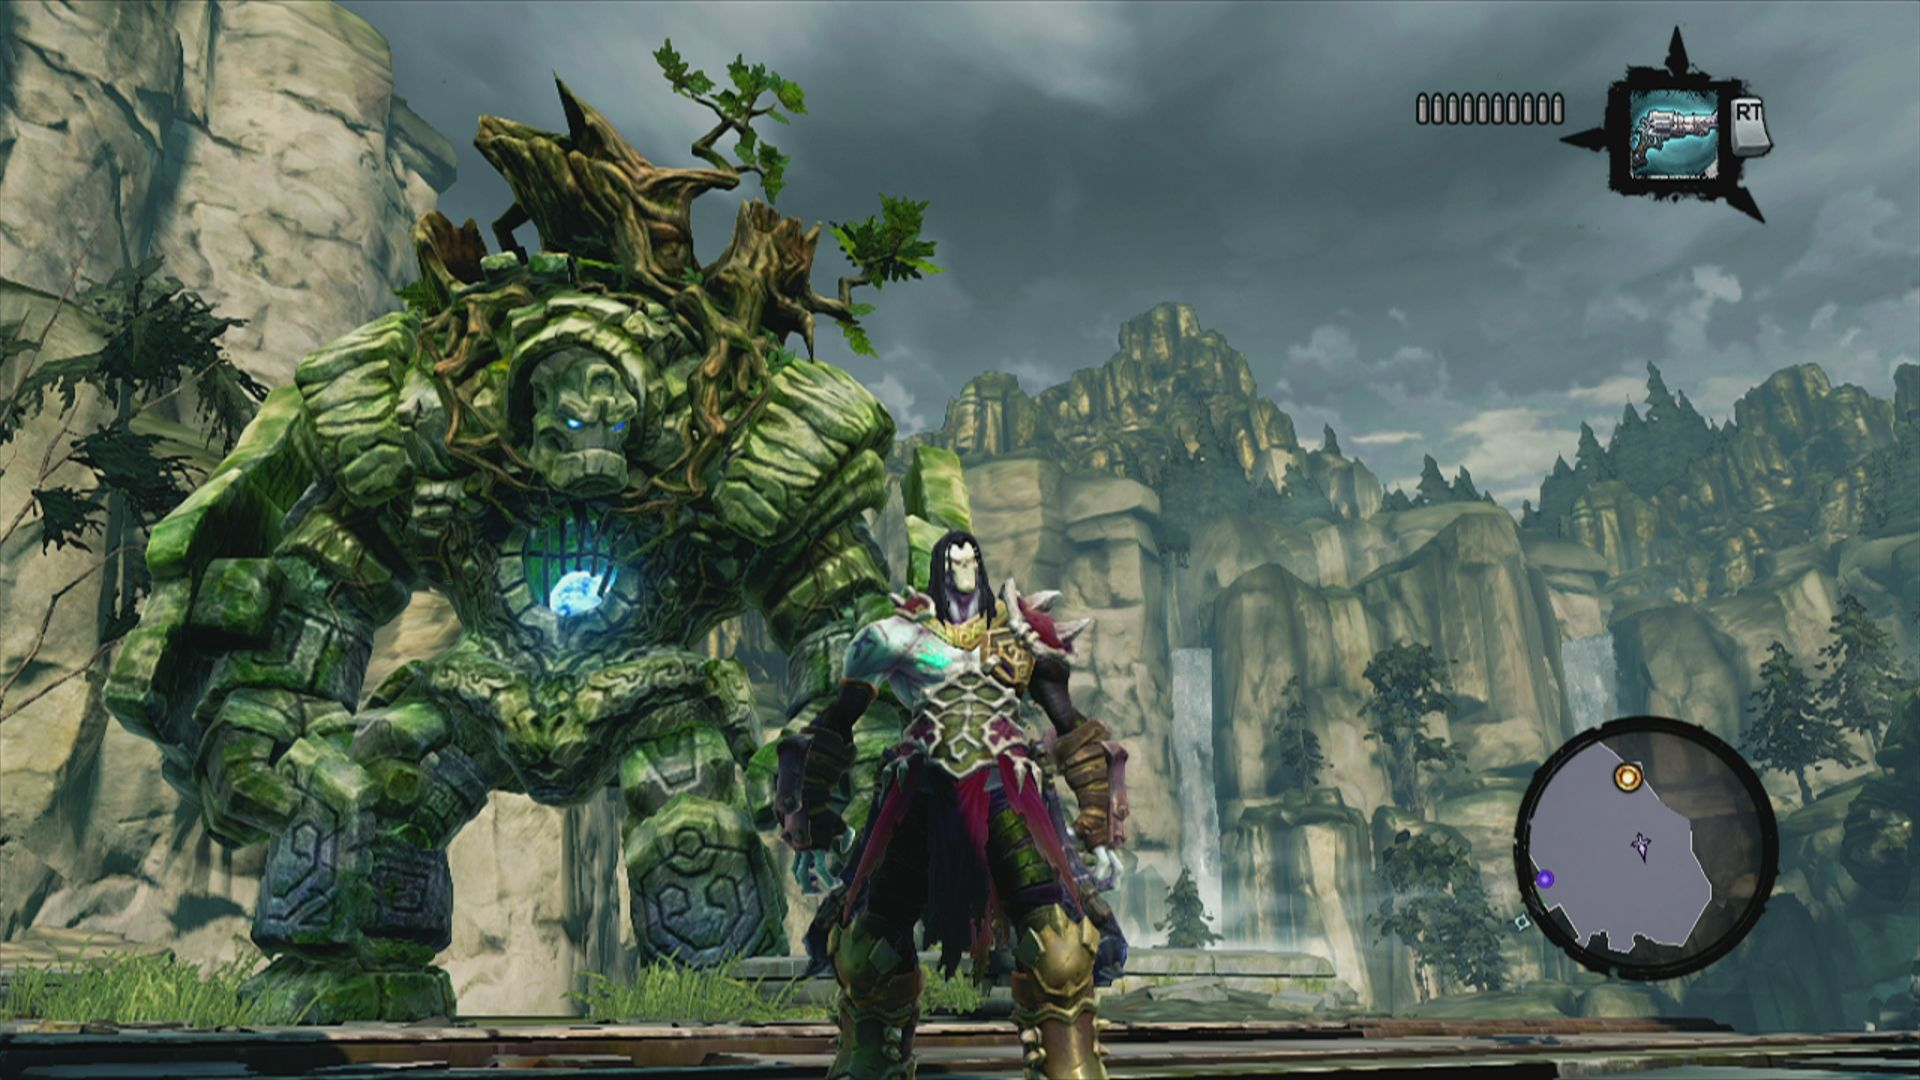 Darksiders II Xbox 360 Meet my new best buddy